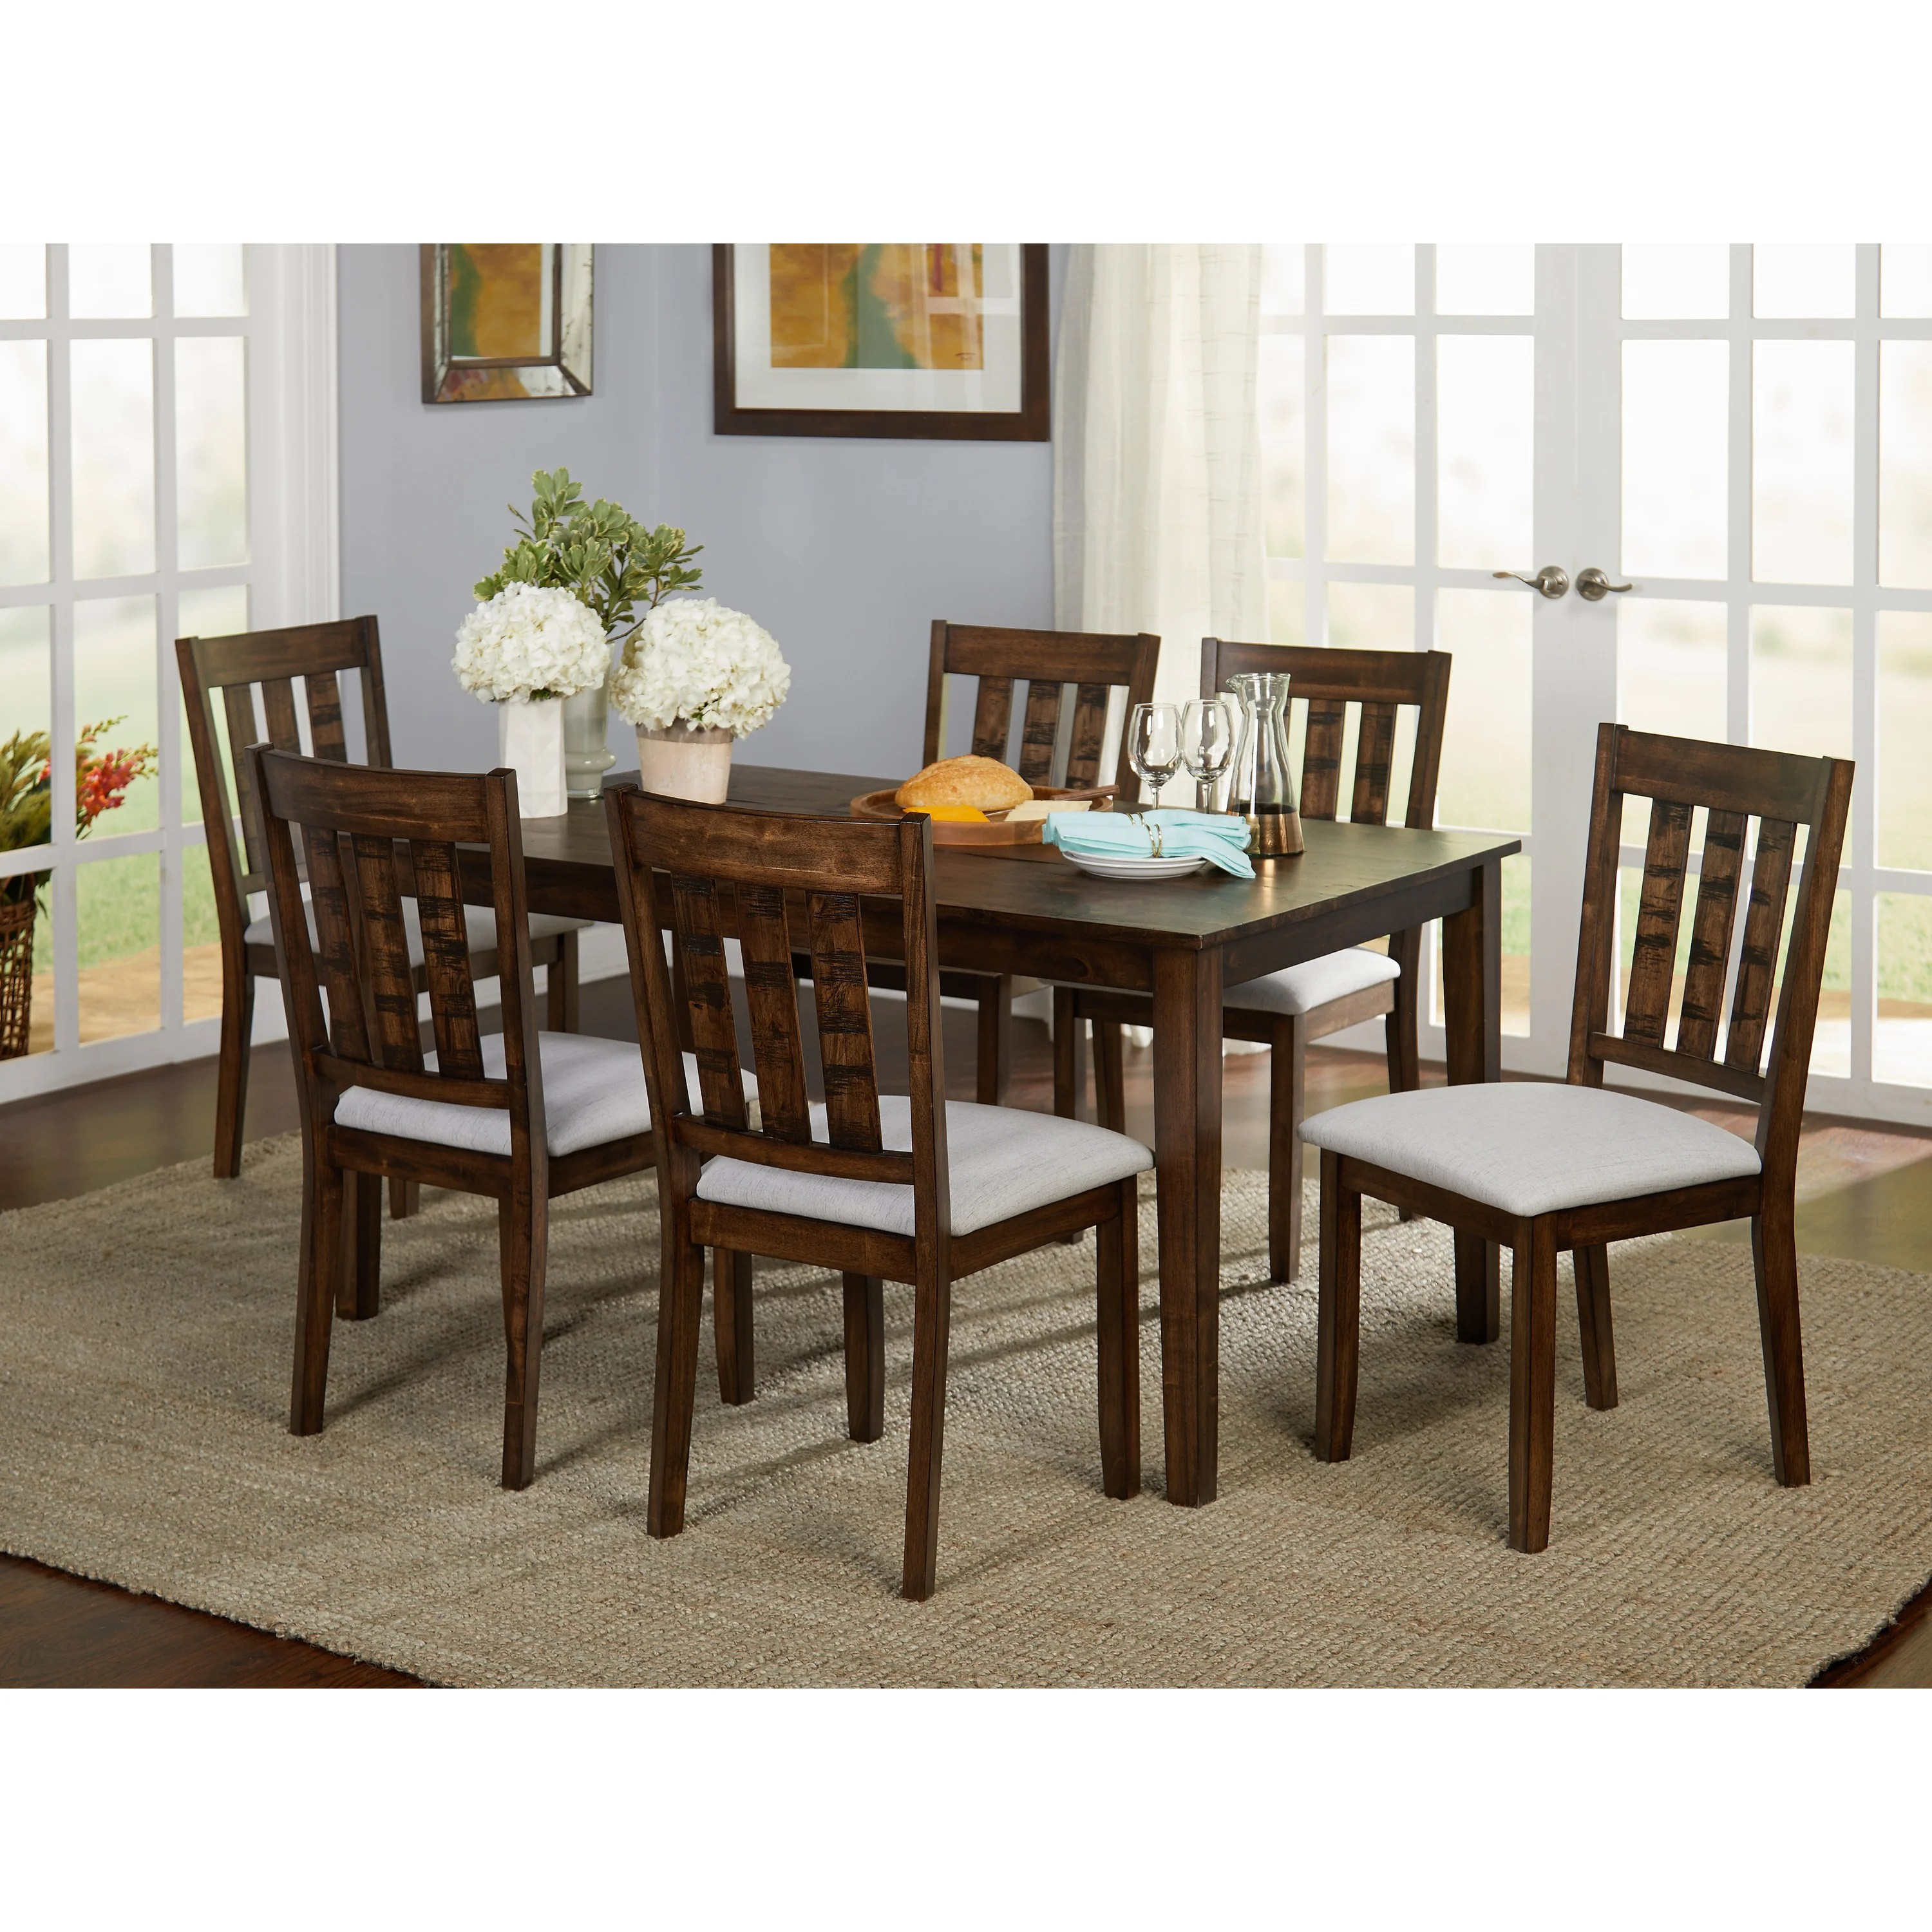 Cheap Dining Room Table And Chairs Buy Kitchen Dining Room Sets Online At Overstock Our Best